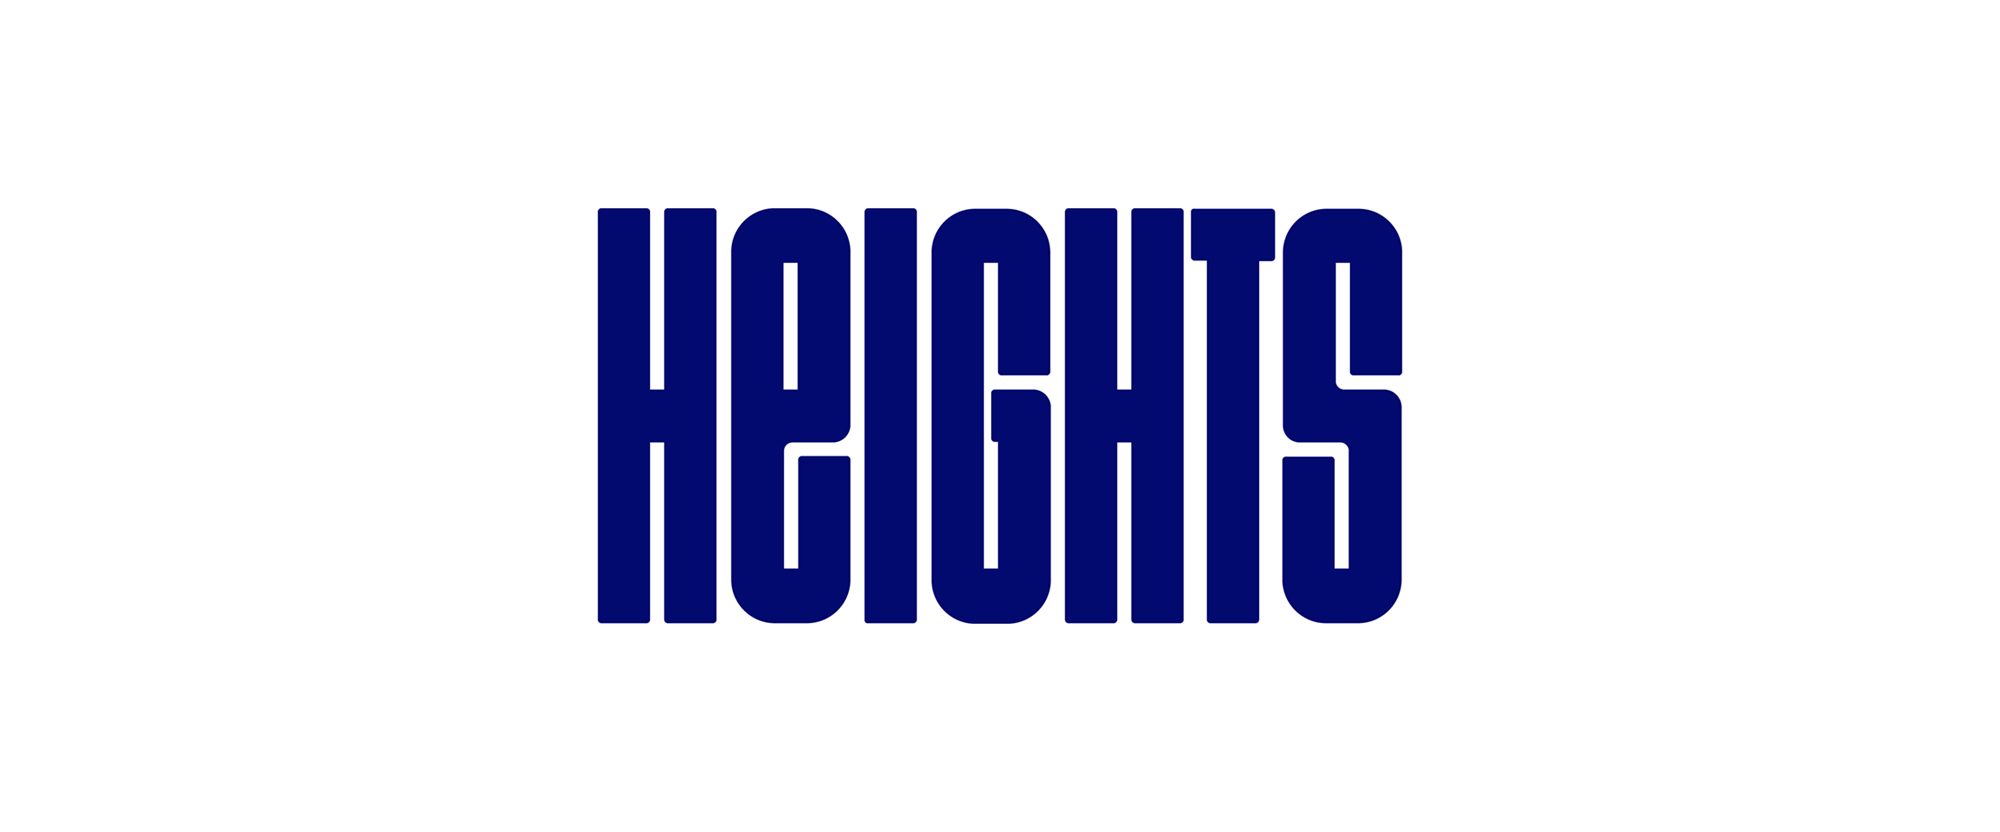 New Logo and Identity for Heights by Ragged Edge